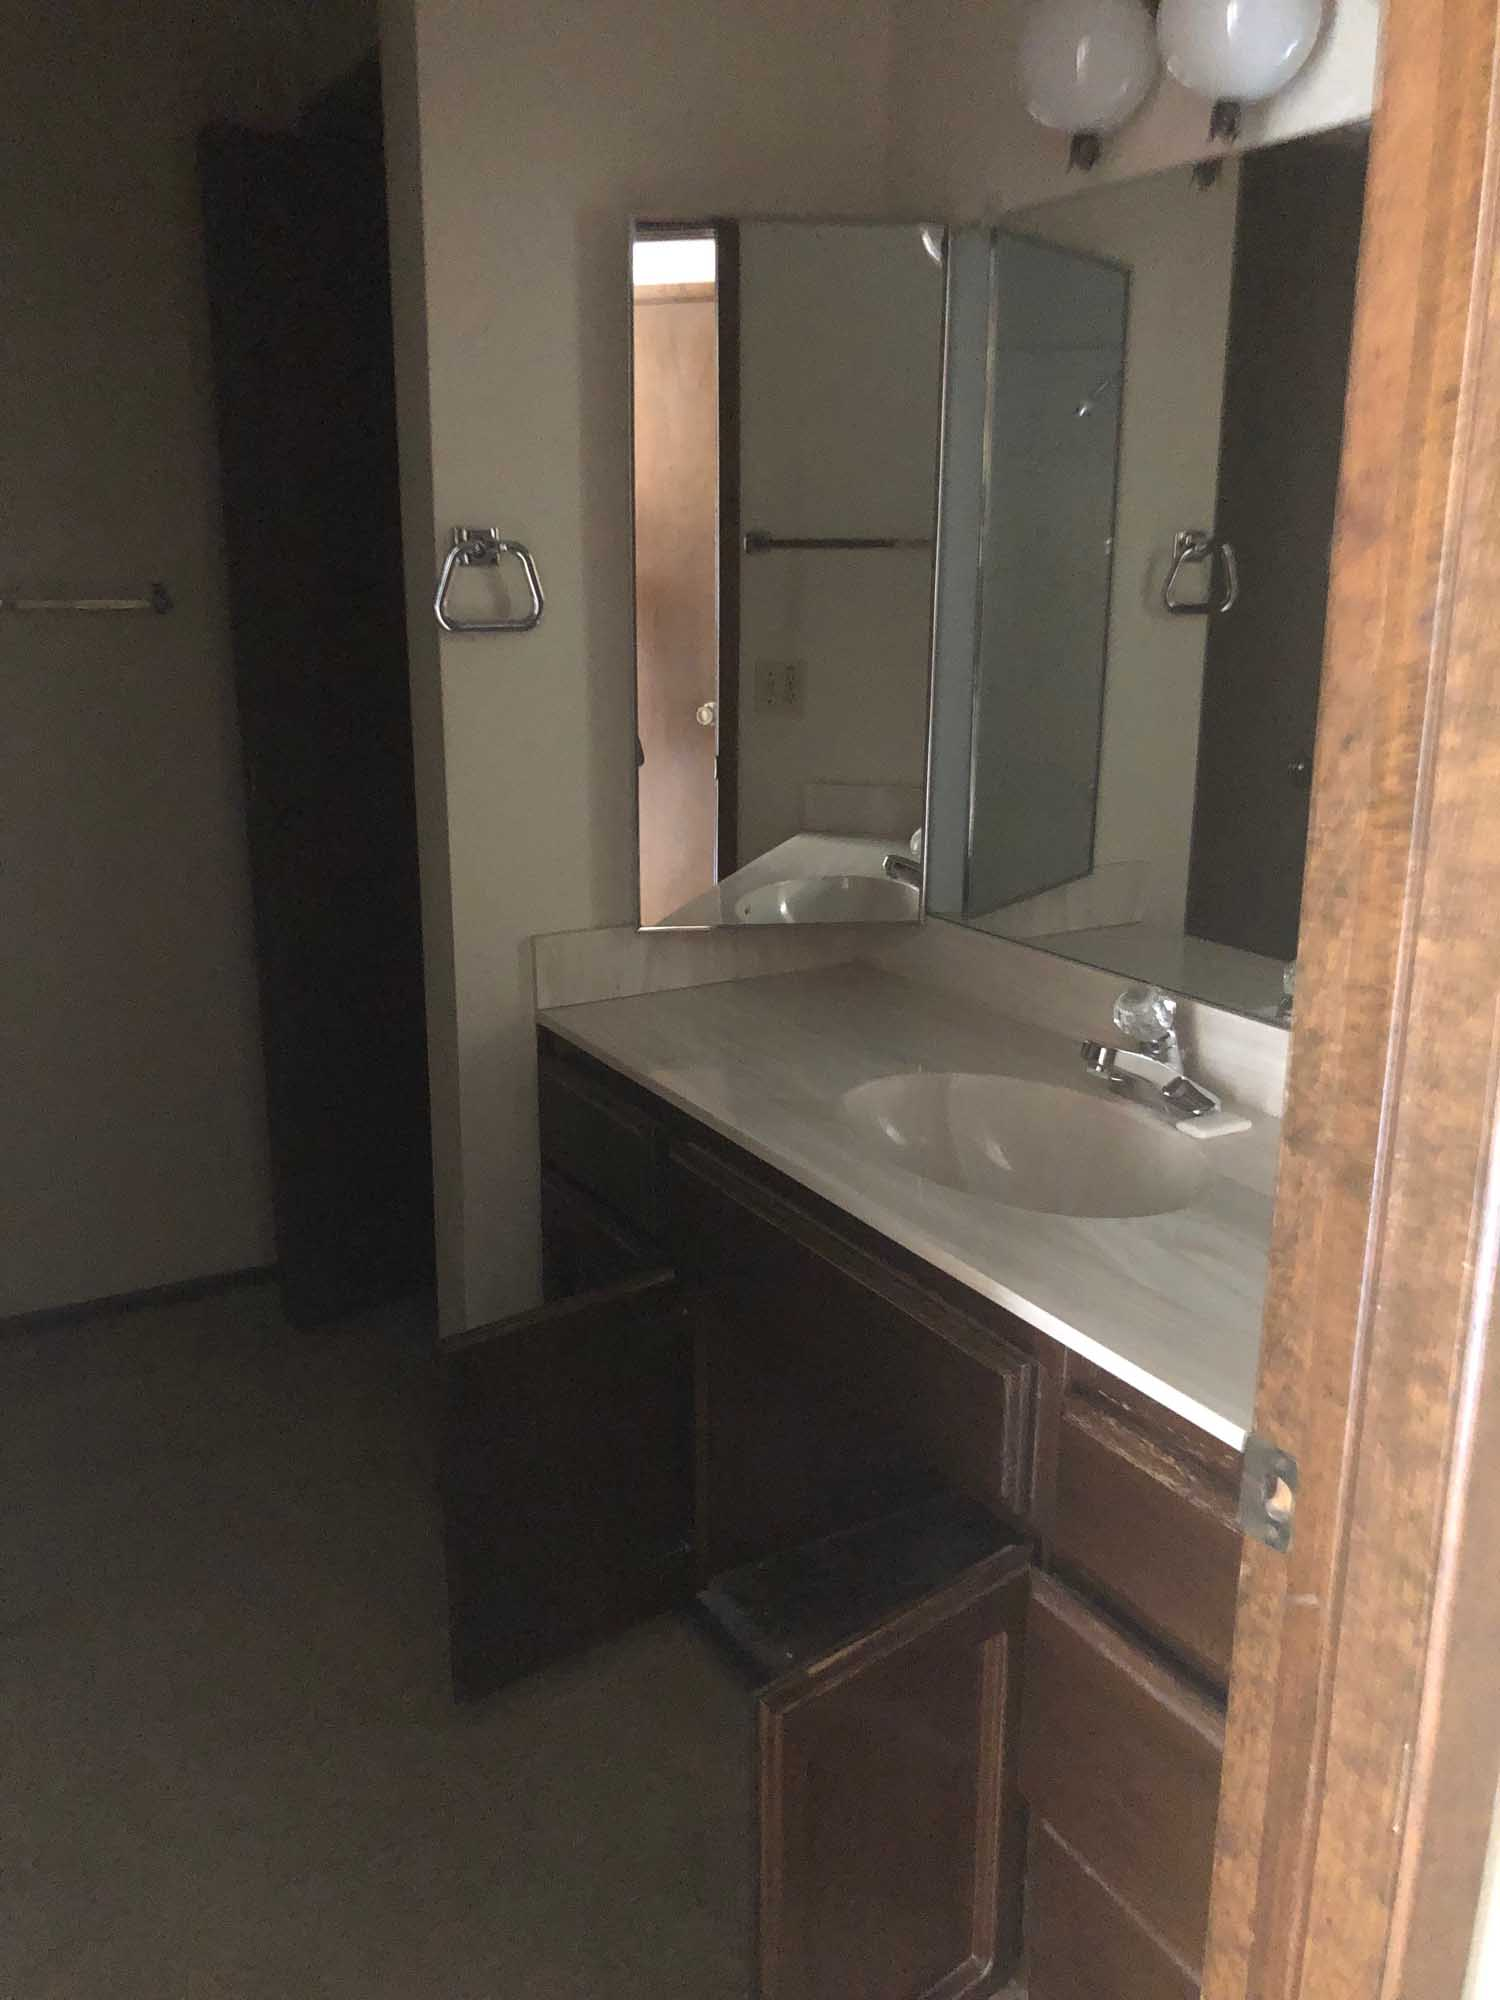 Old sink and faucet with mirror